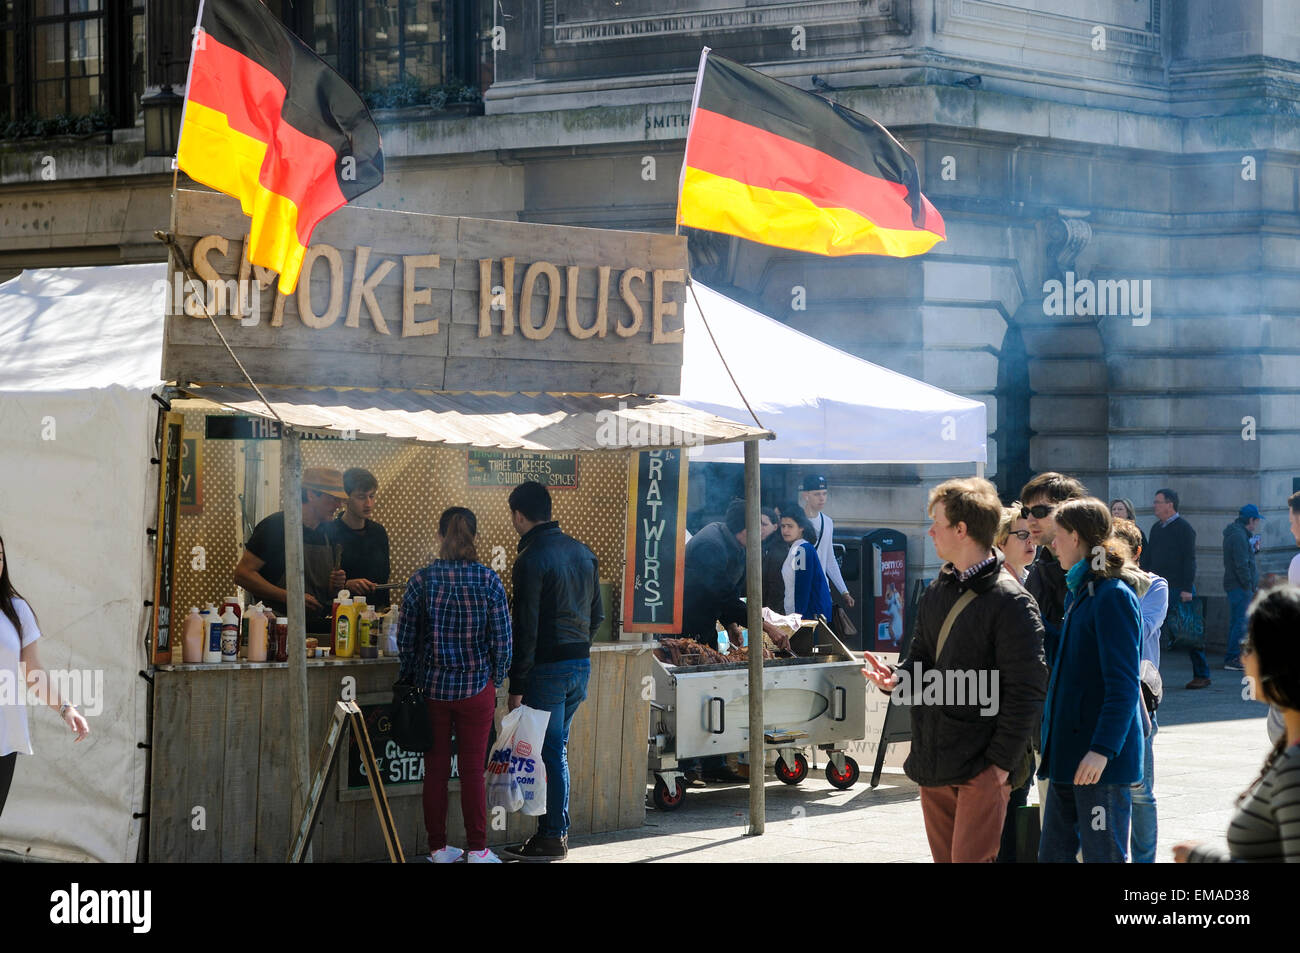 UK Weather Bright Sunny Day Brings Out The Crowds In Center Of NottinghamGerman Food Market Fills Square With Smoke From Burgers Credit